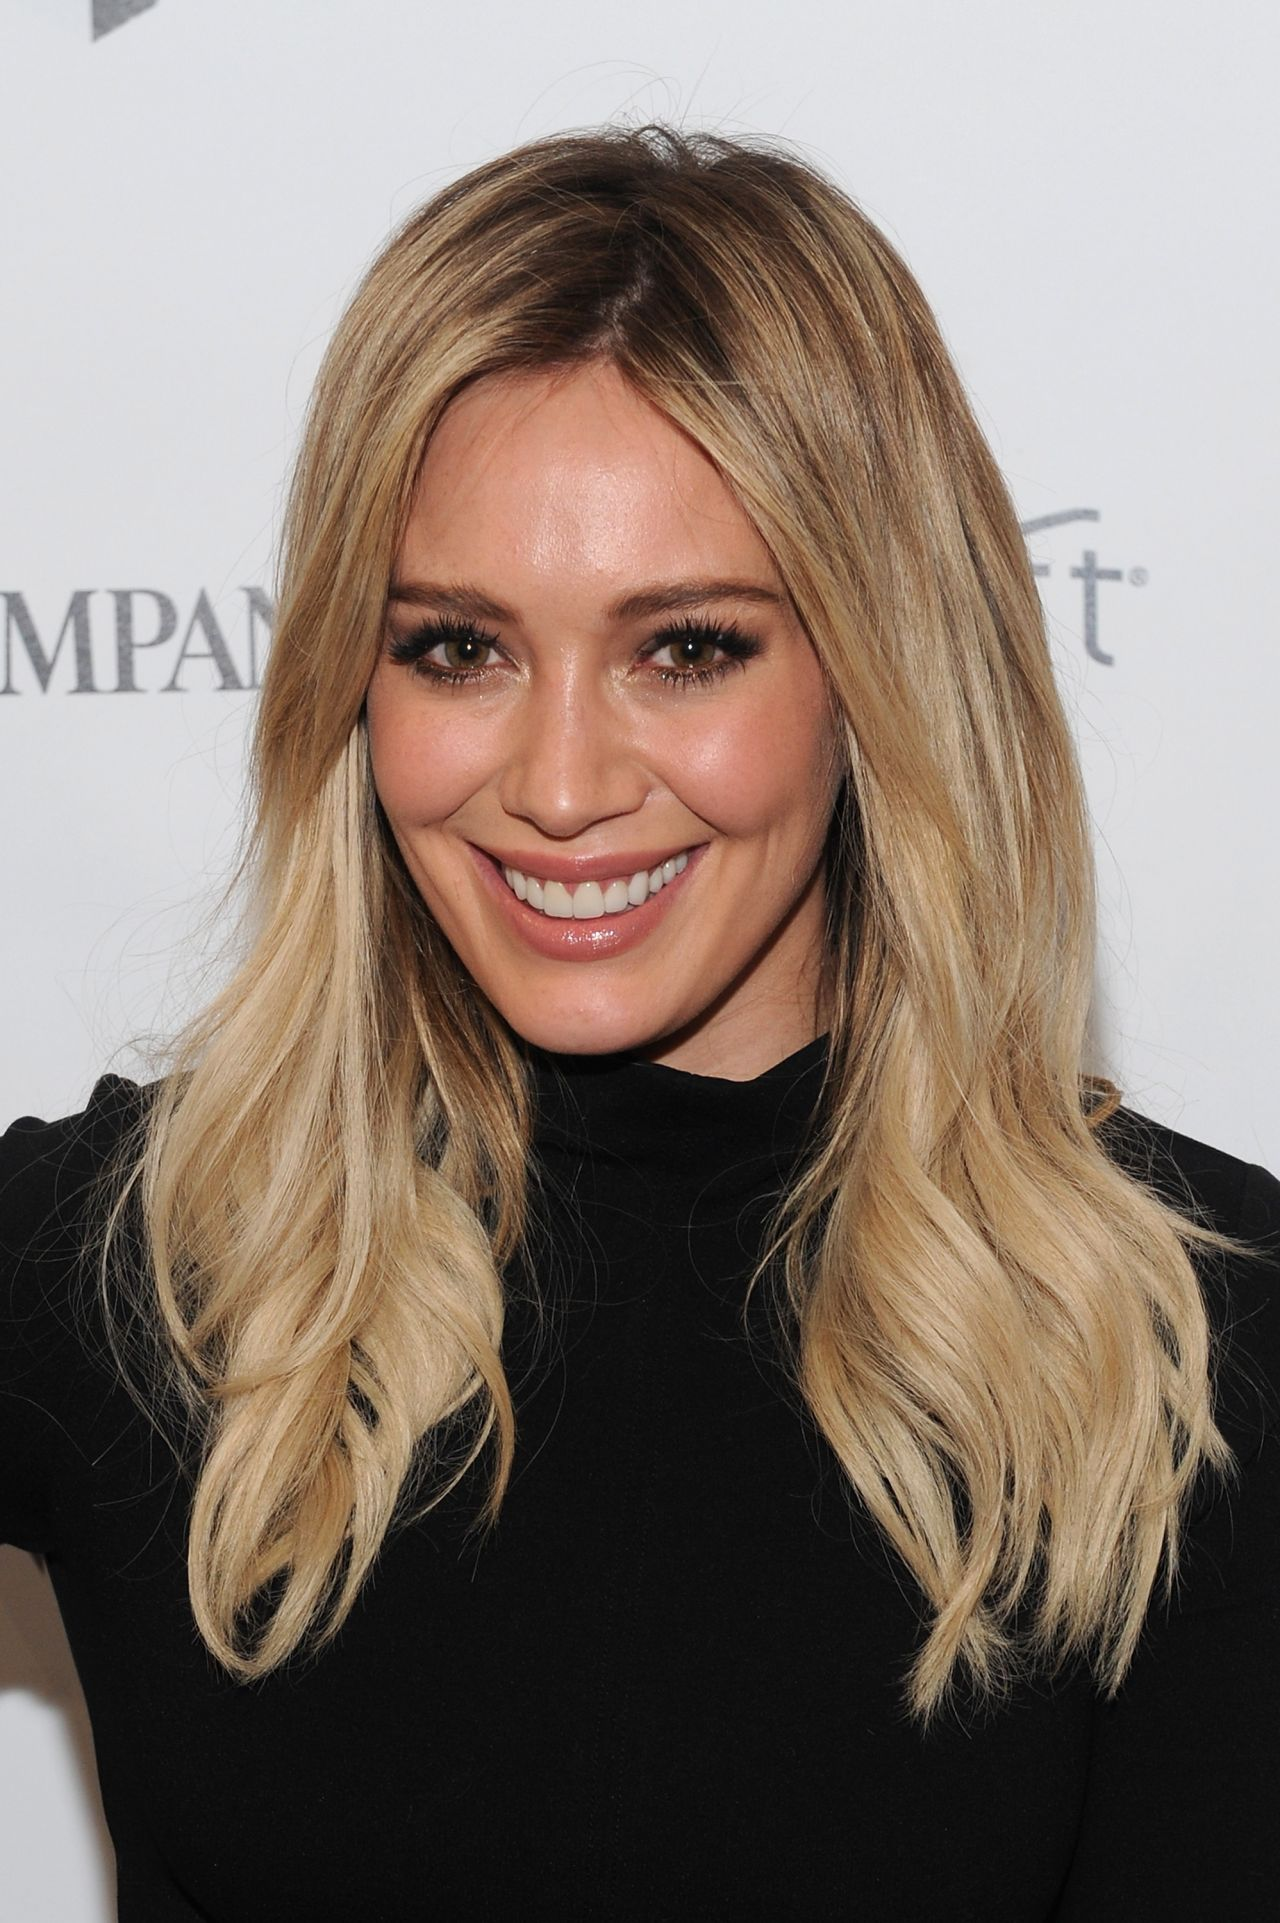 hilary duff latest photos celebmafia. Black Bedroom Furniture Sets. Home Design Ideas